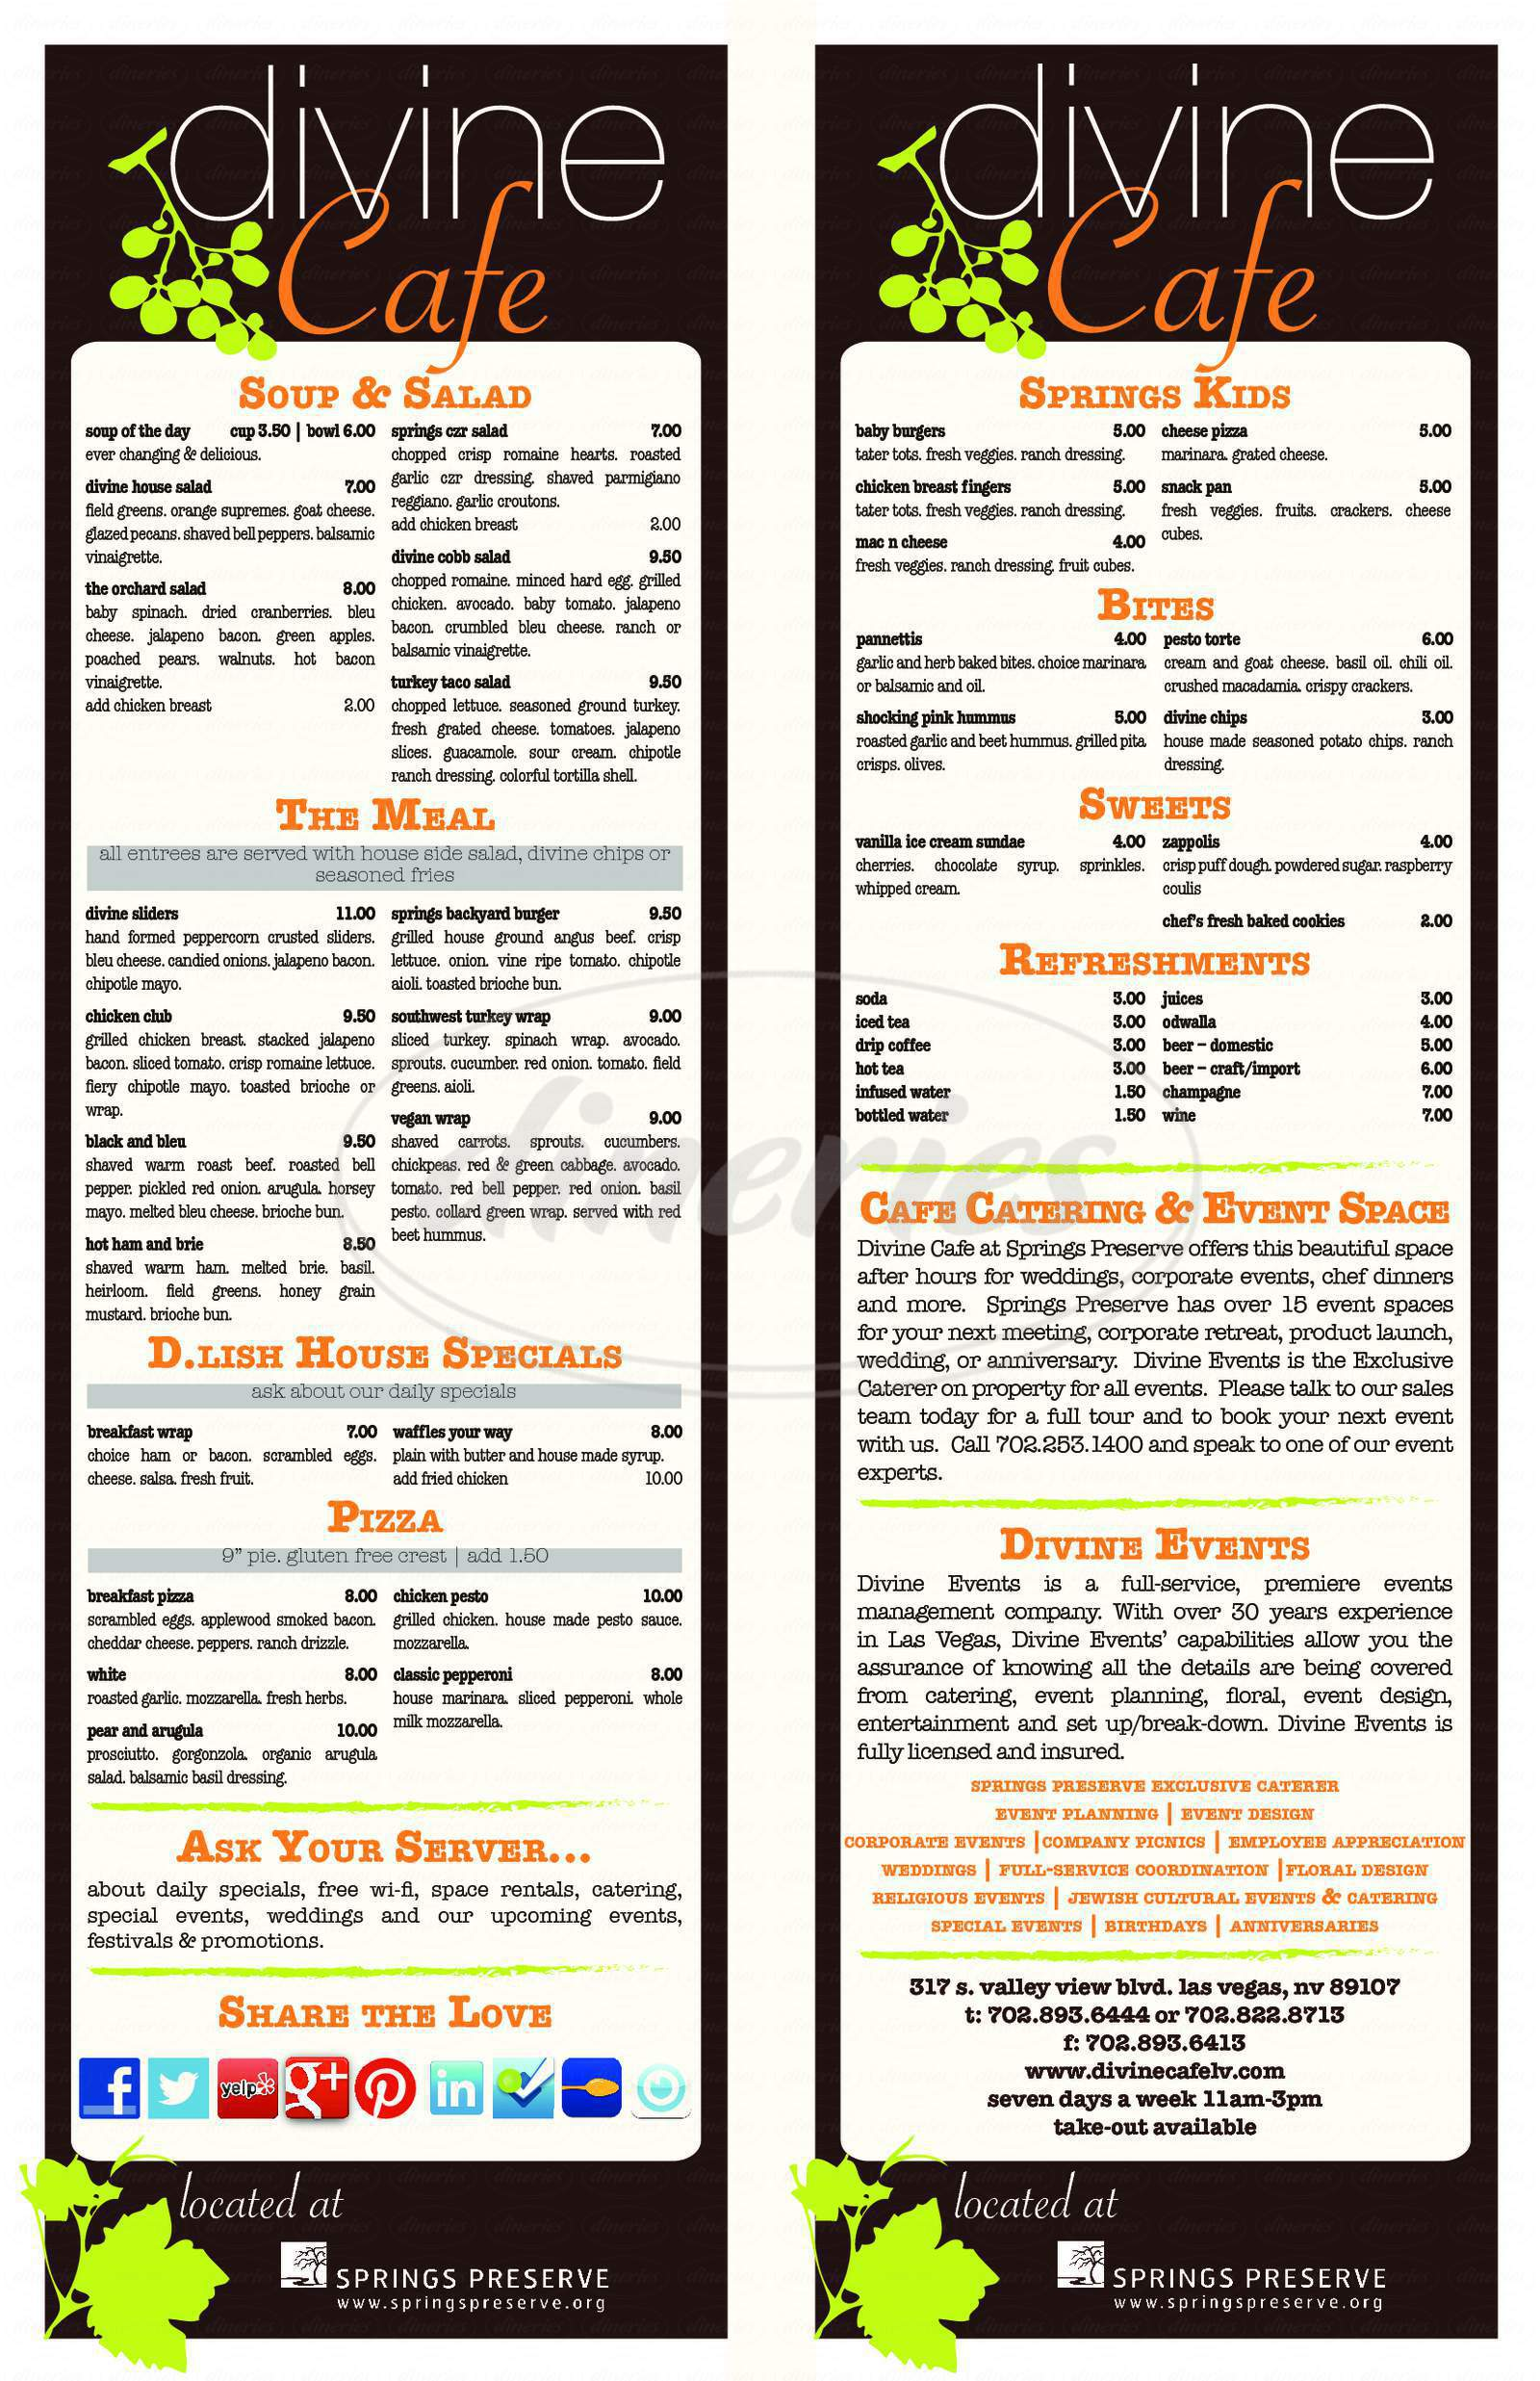 menu for Springs Cafe